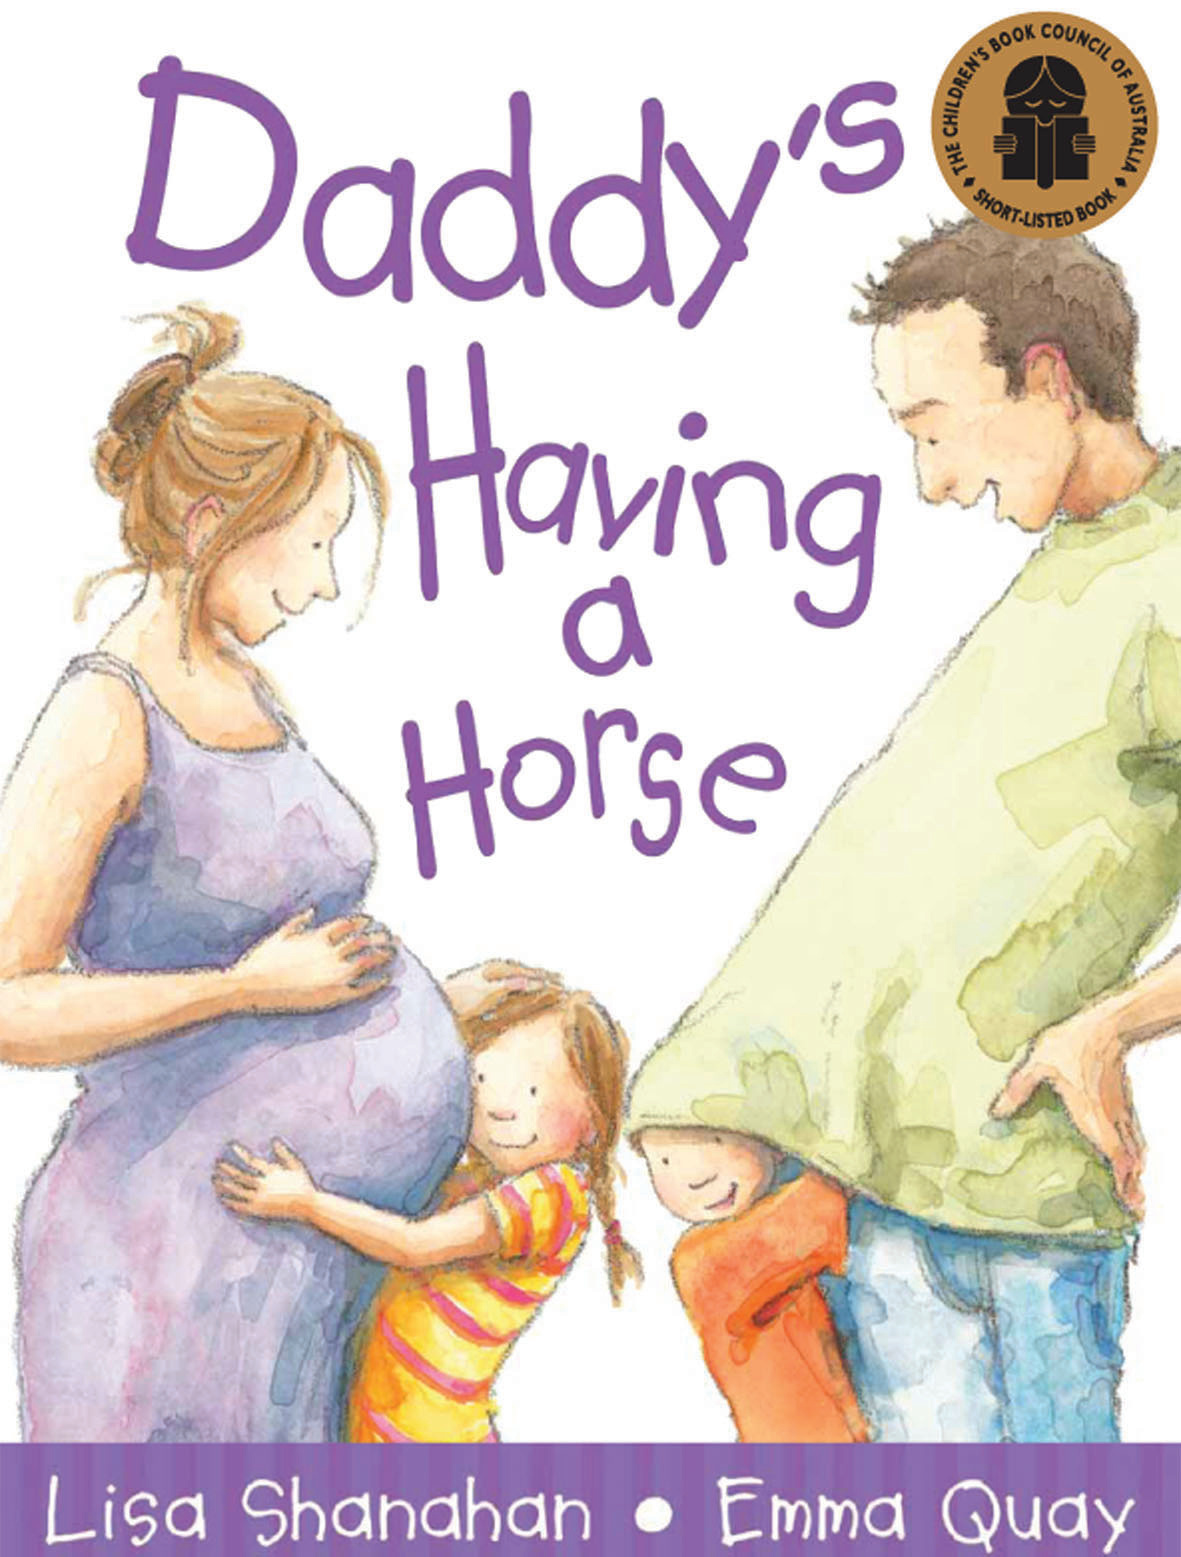 Daddy's Having a Horse